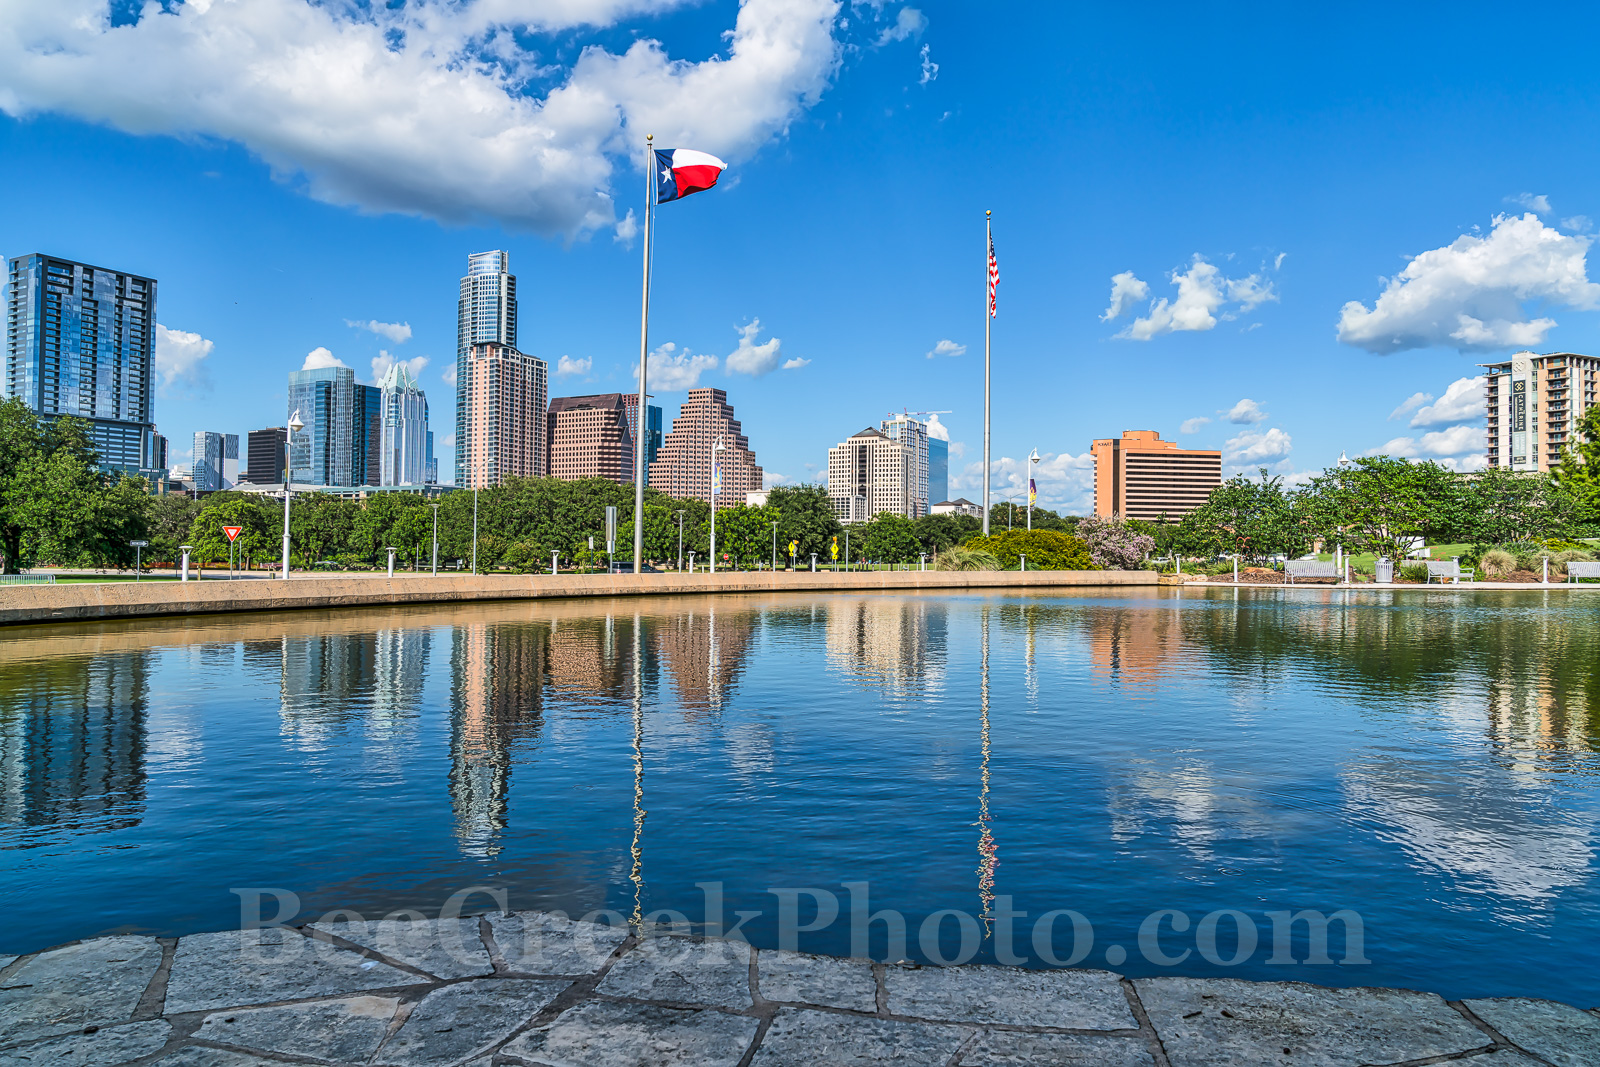 Austin, skyline, cityscape, Austin Skyline Reflection, downtown, water, Long Center, reflections, cityscape, city, blue sky, clouds, buildings, high rise, images of austin, images of austin skyline, T, photo